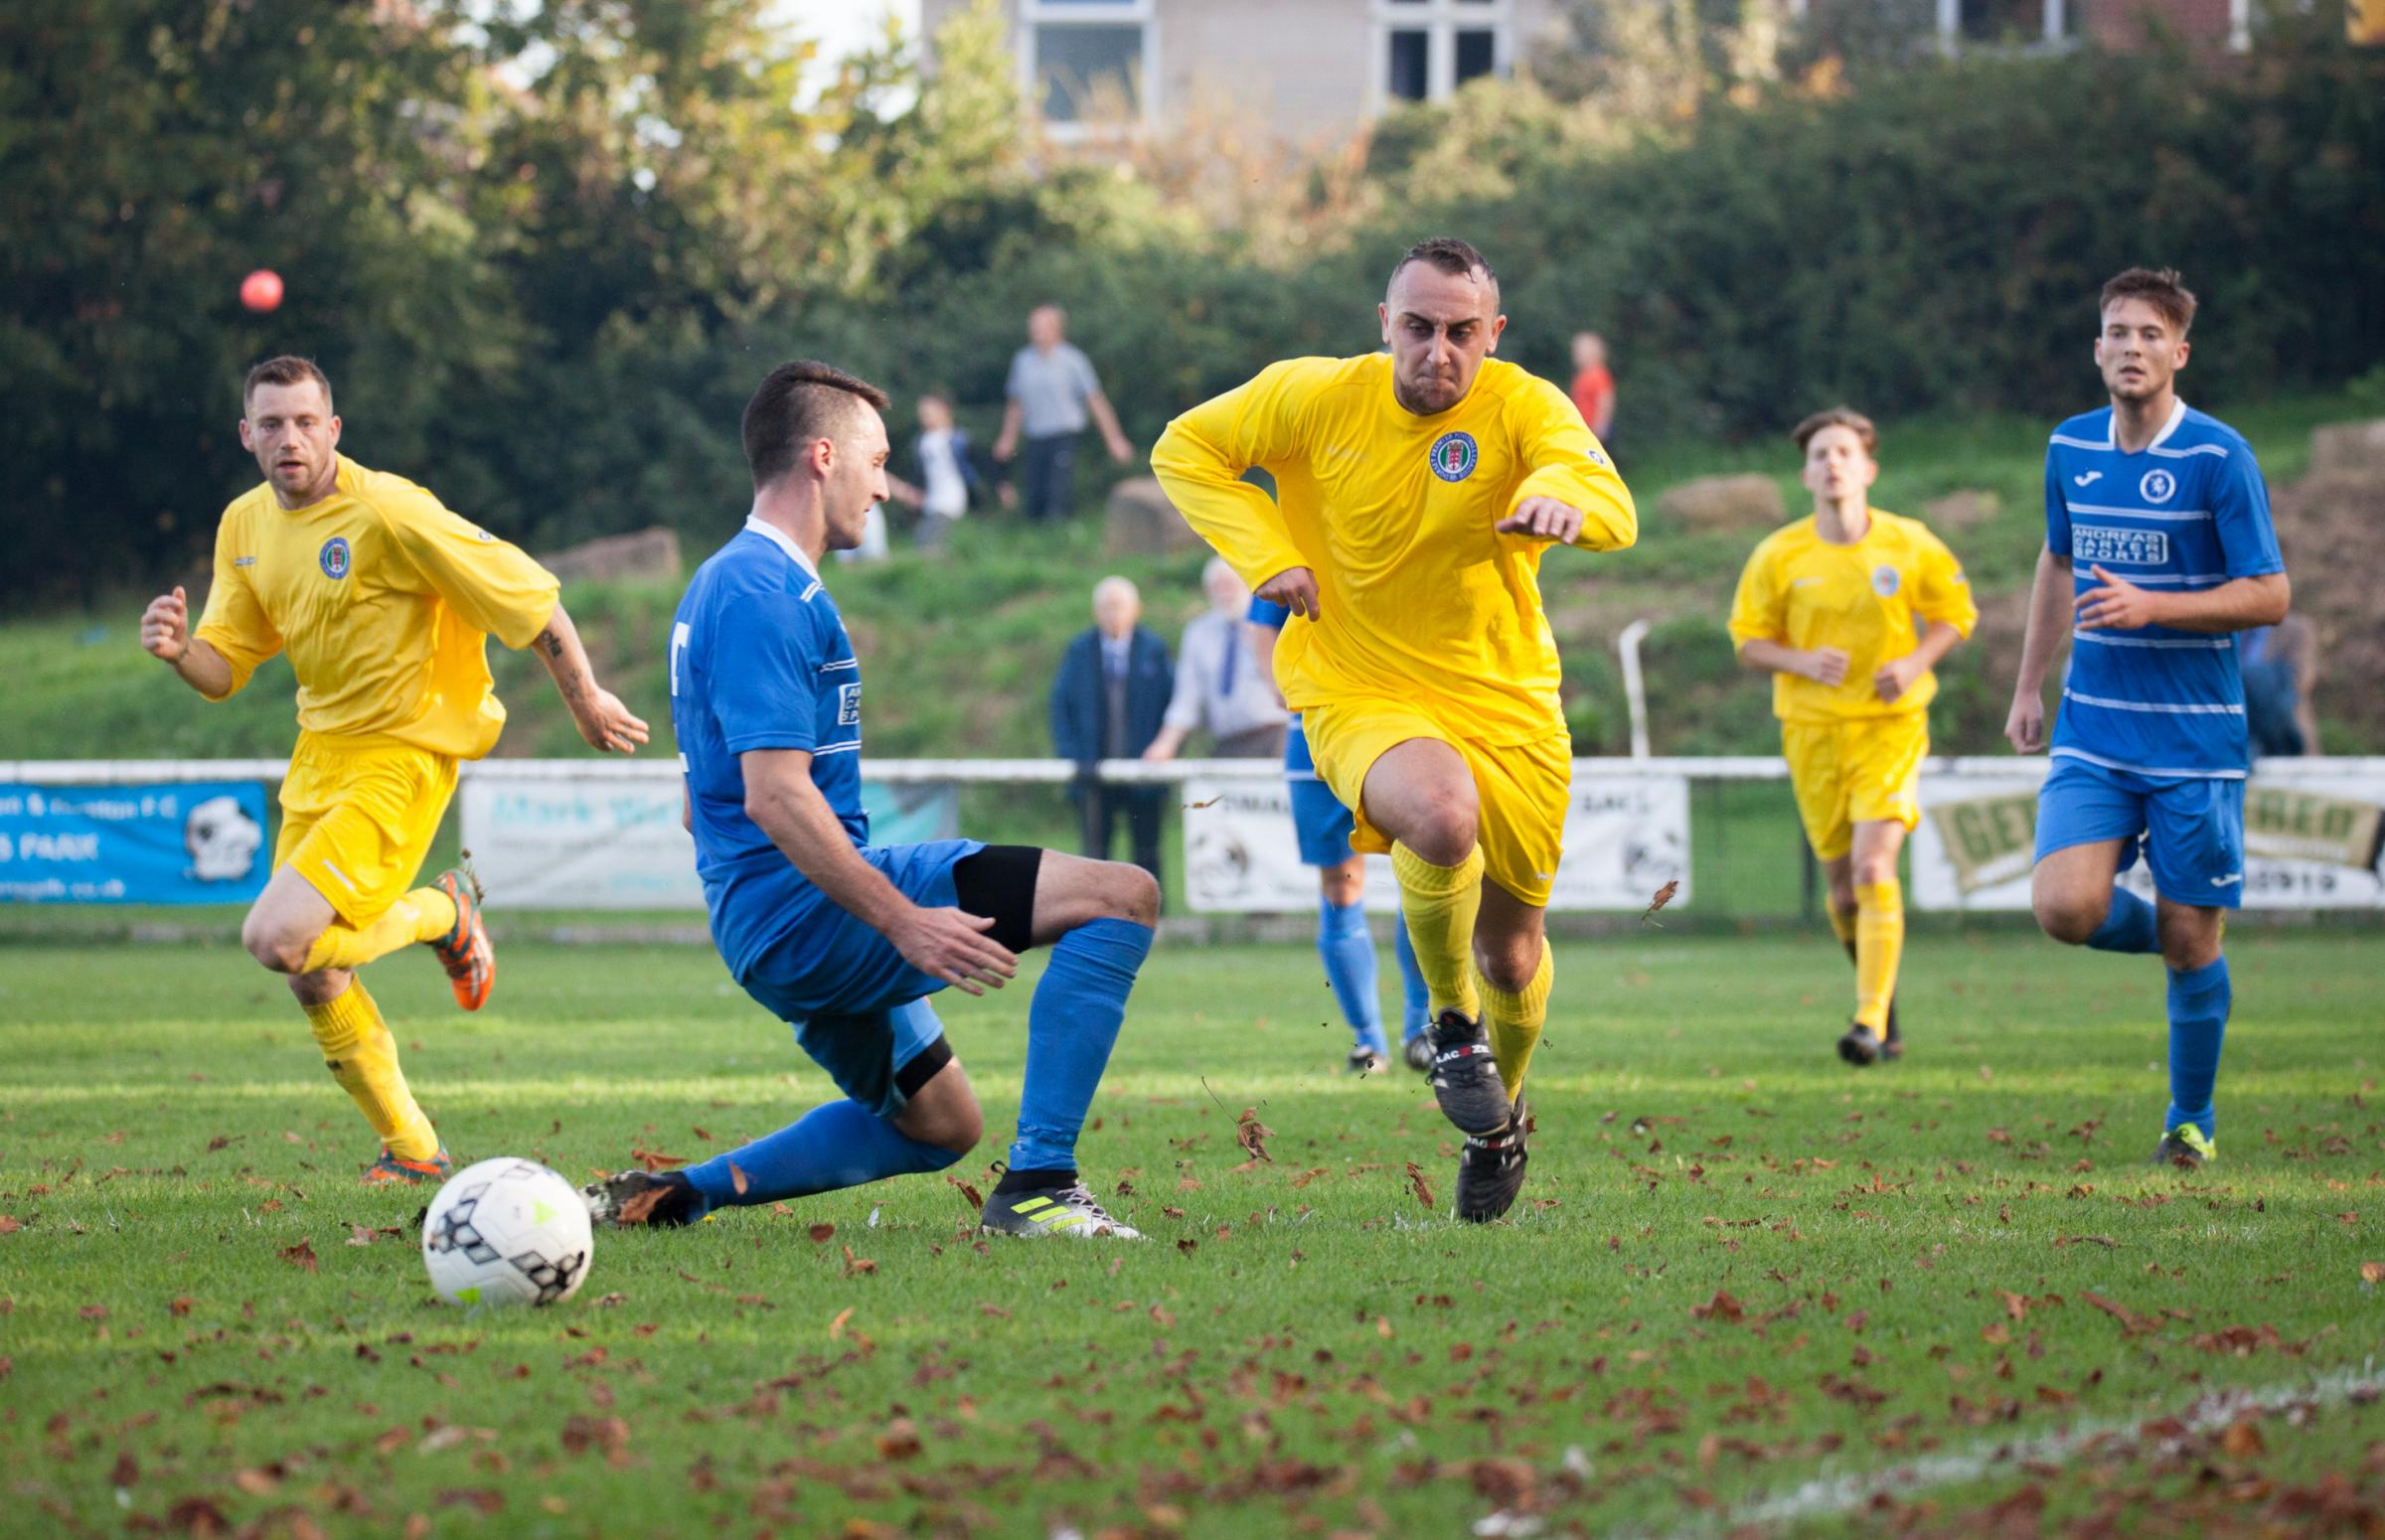 ON TARGET: Nathan Saxby, pictured in action for the Dorset Premier League representative side, netted in Holt's League Cup win over Blandford United (Picture: Steve Harris)